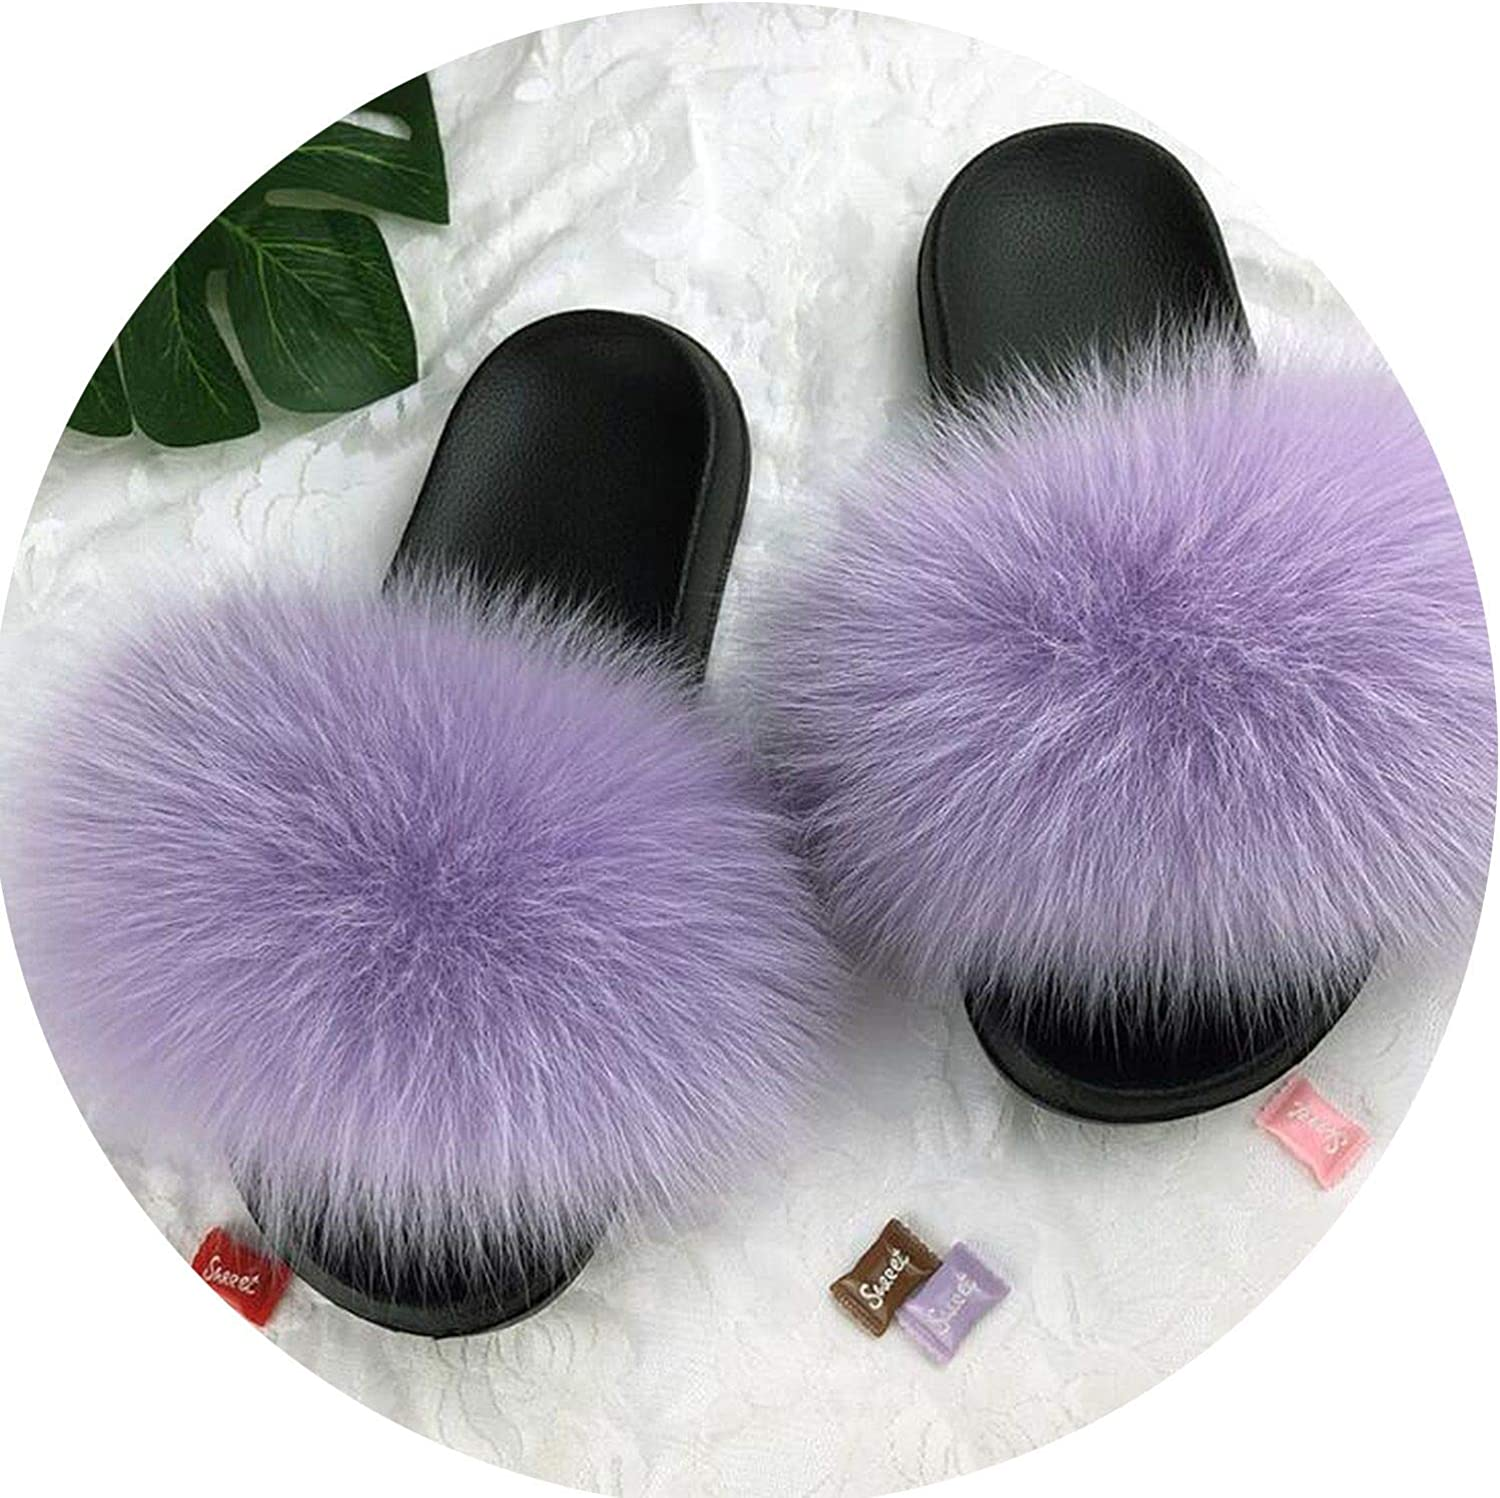 Real Fox Hair Slippers Plush Furry Real Fur Slippers 2019 Casual Soft Bottom Slides Summer Shoes Women Flip Flops Ladies Sandals,H,11.5